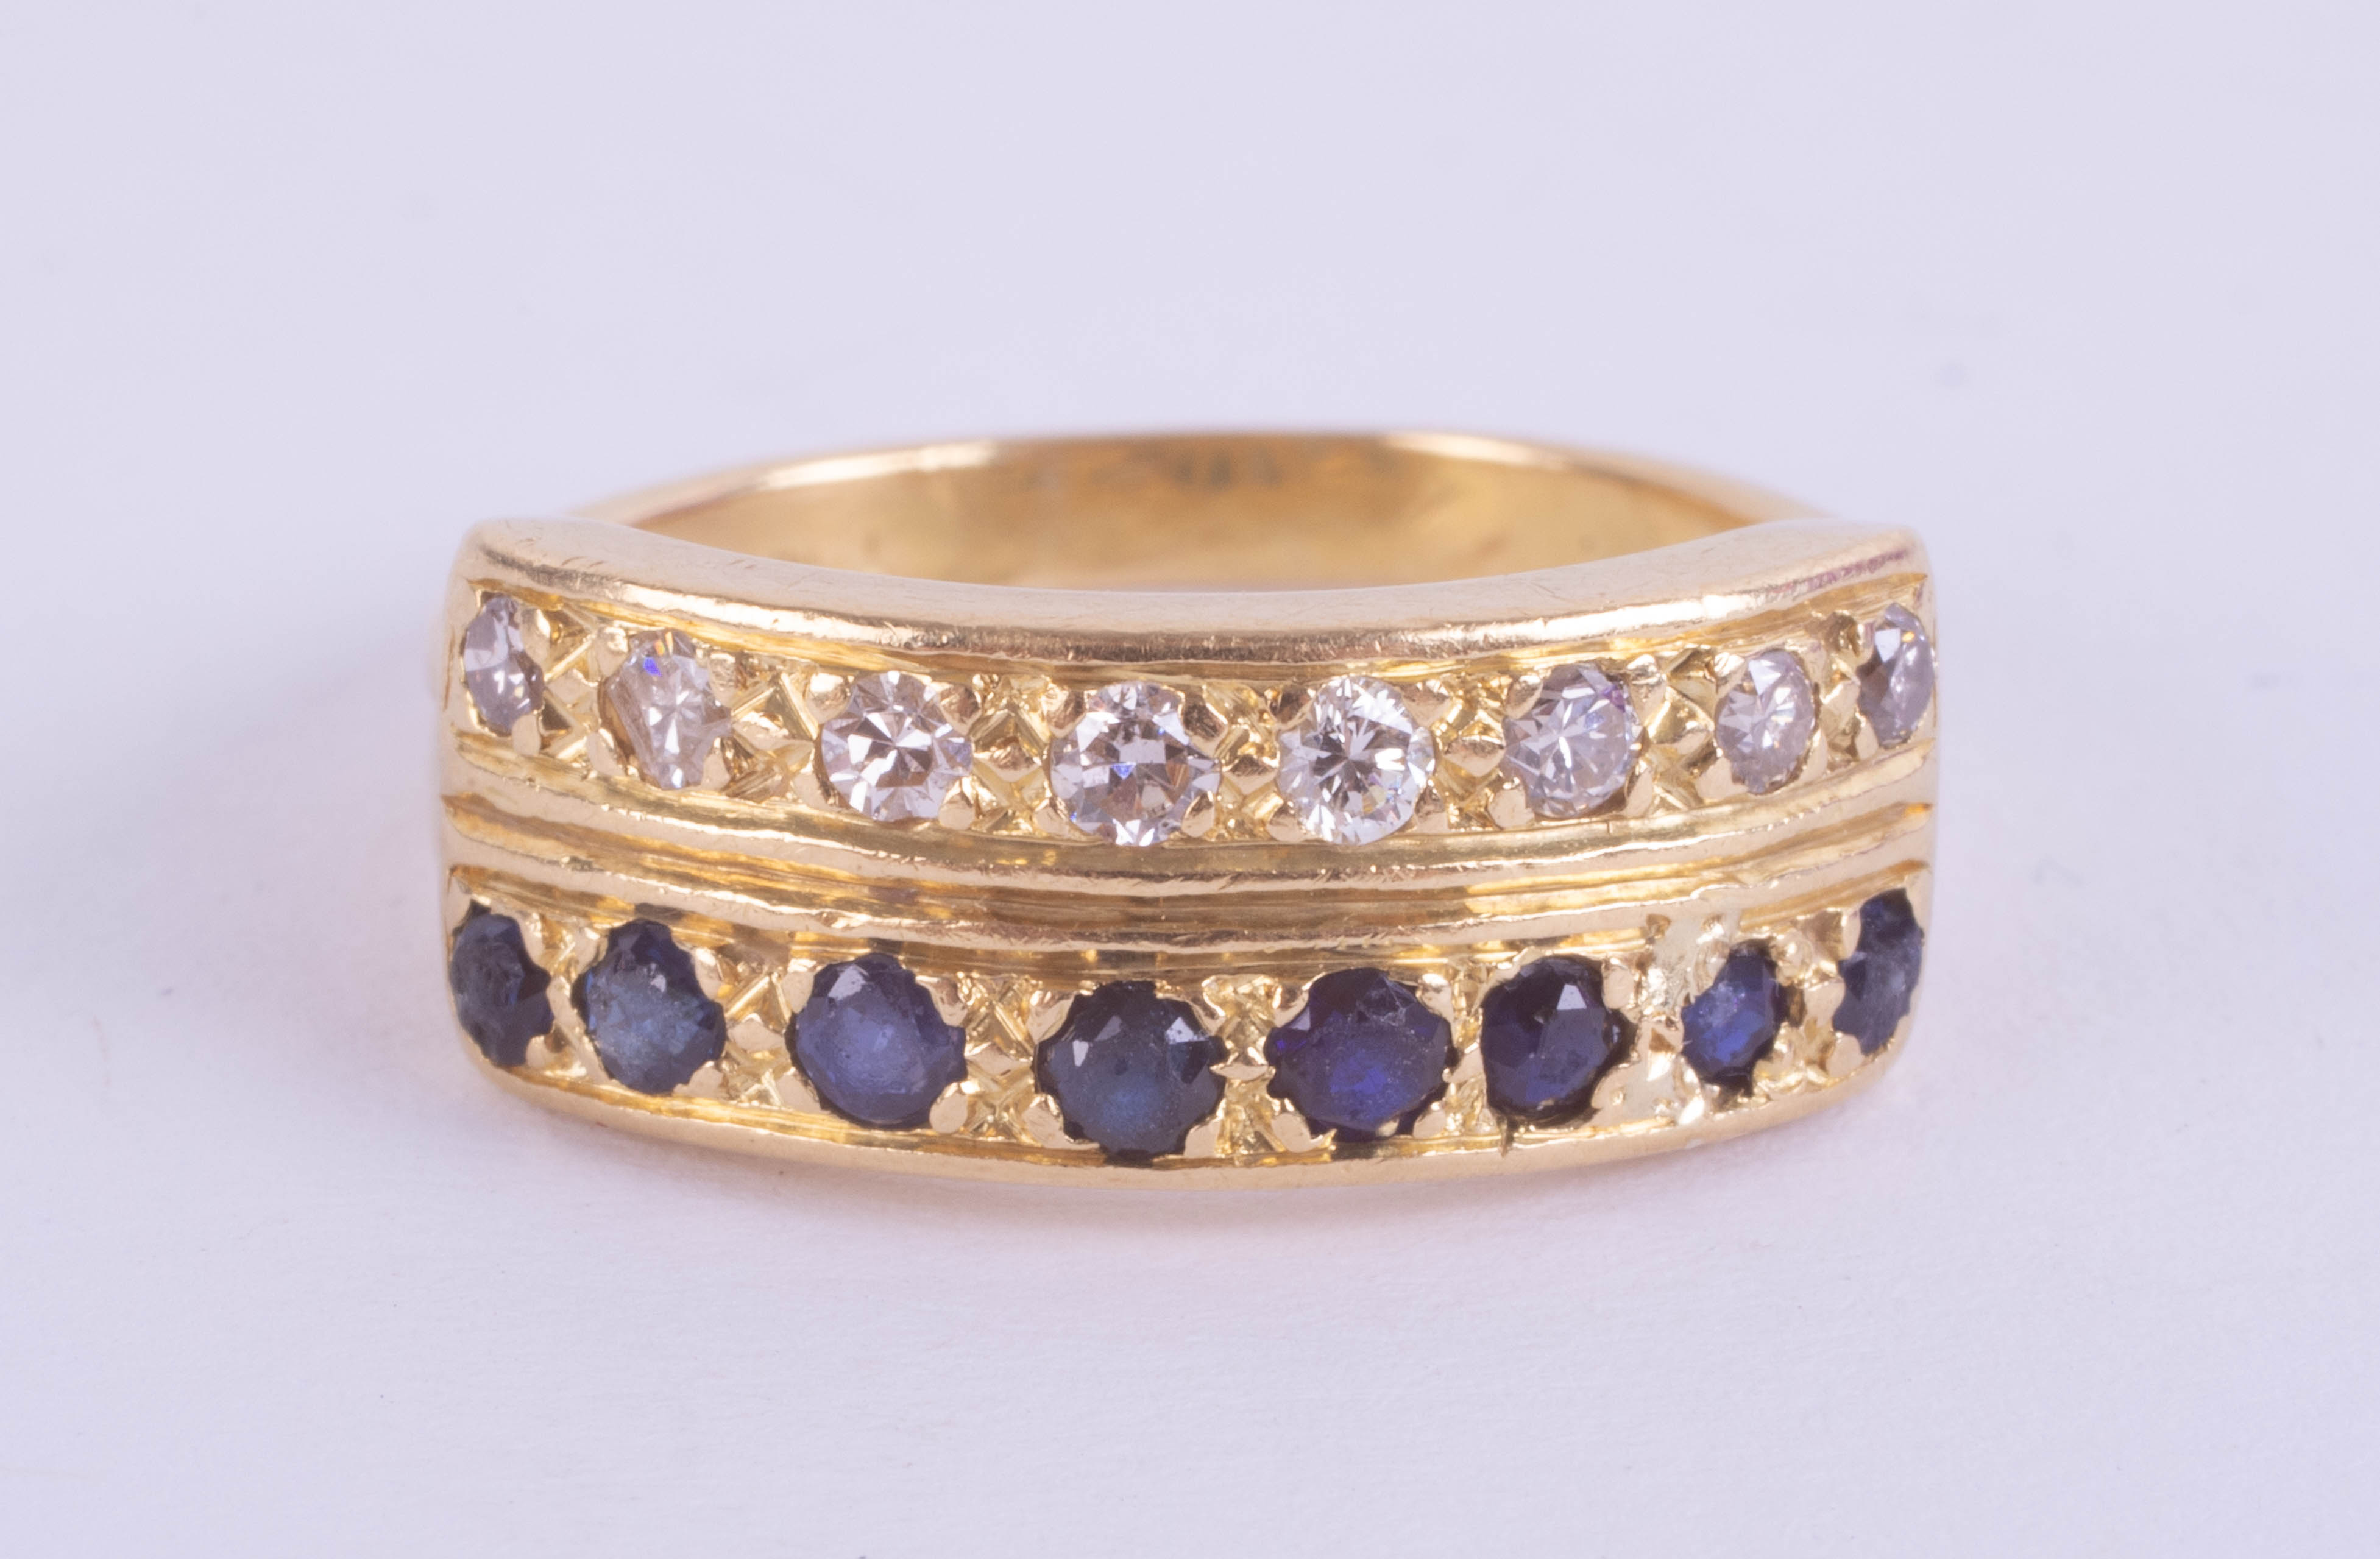 Lot 026 - An 18ct sapphire and diamond two row ring, set with 16 stones in yellow gold.